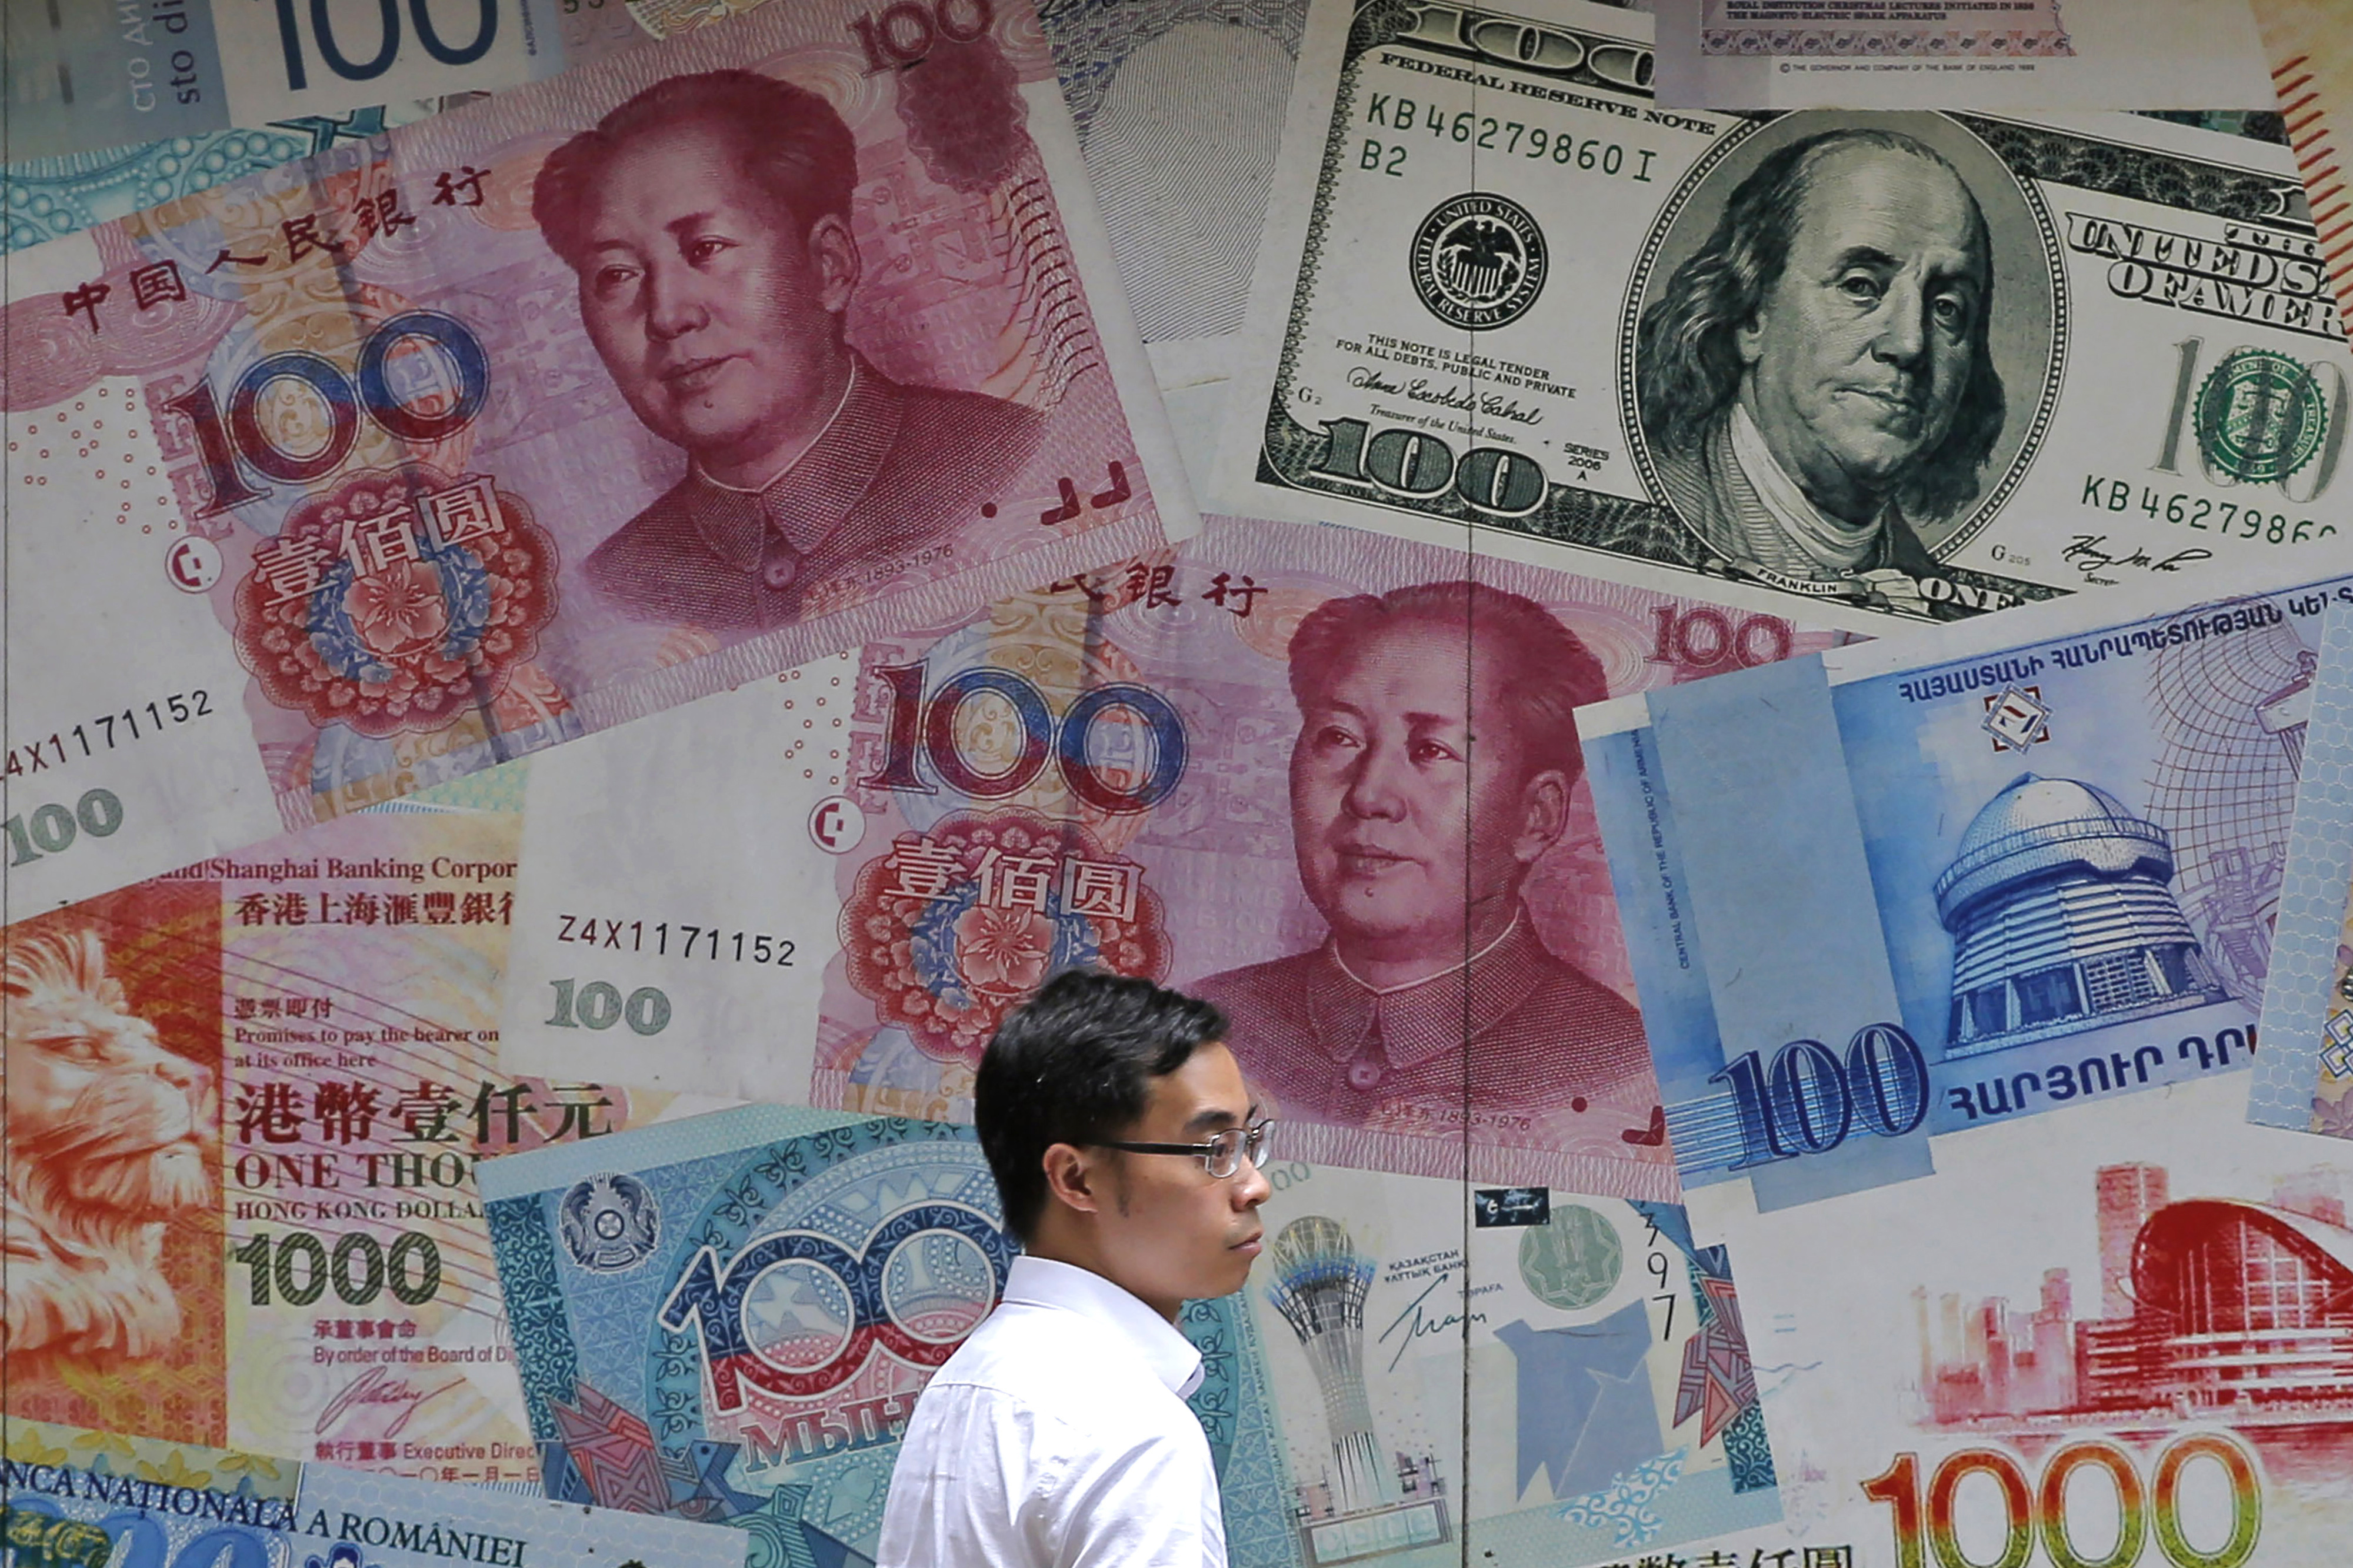 President Trump accuses China of 'currency manipulation